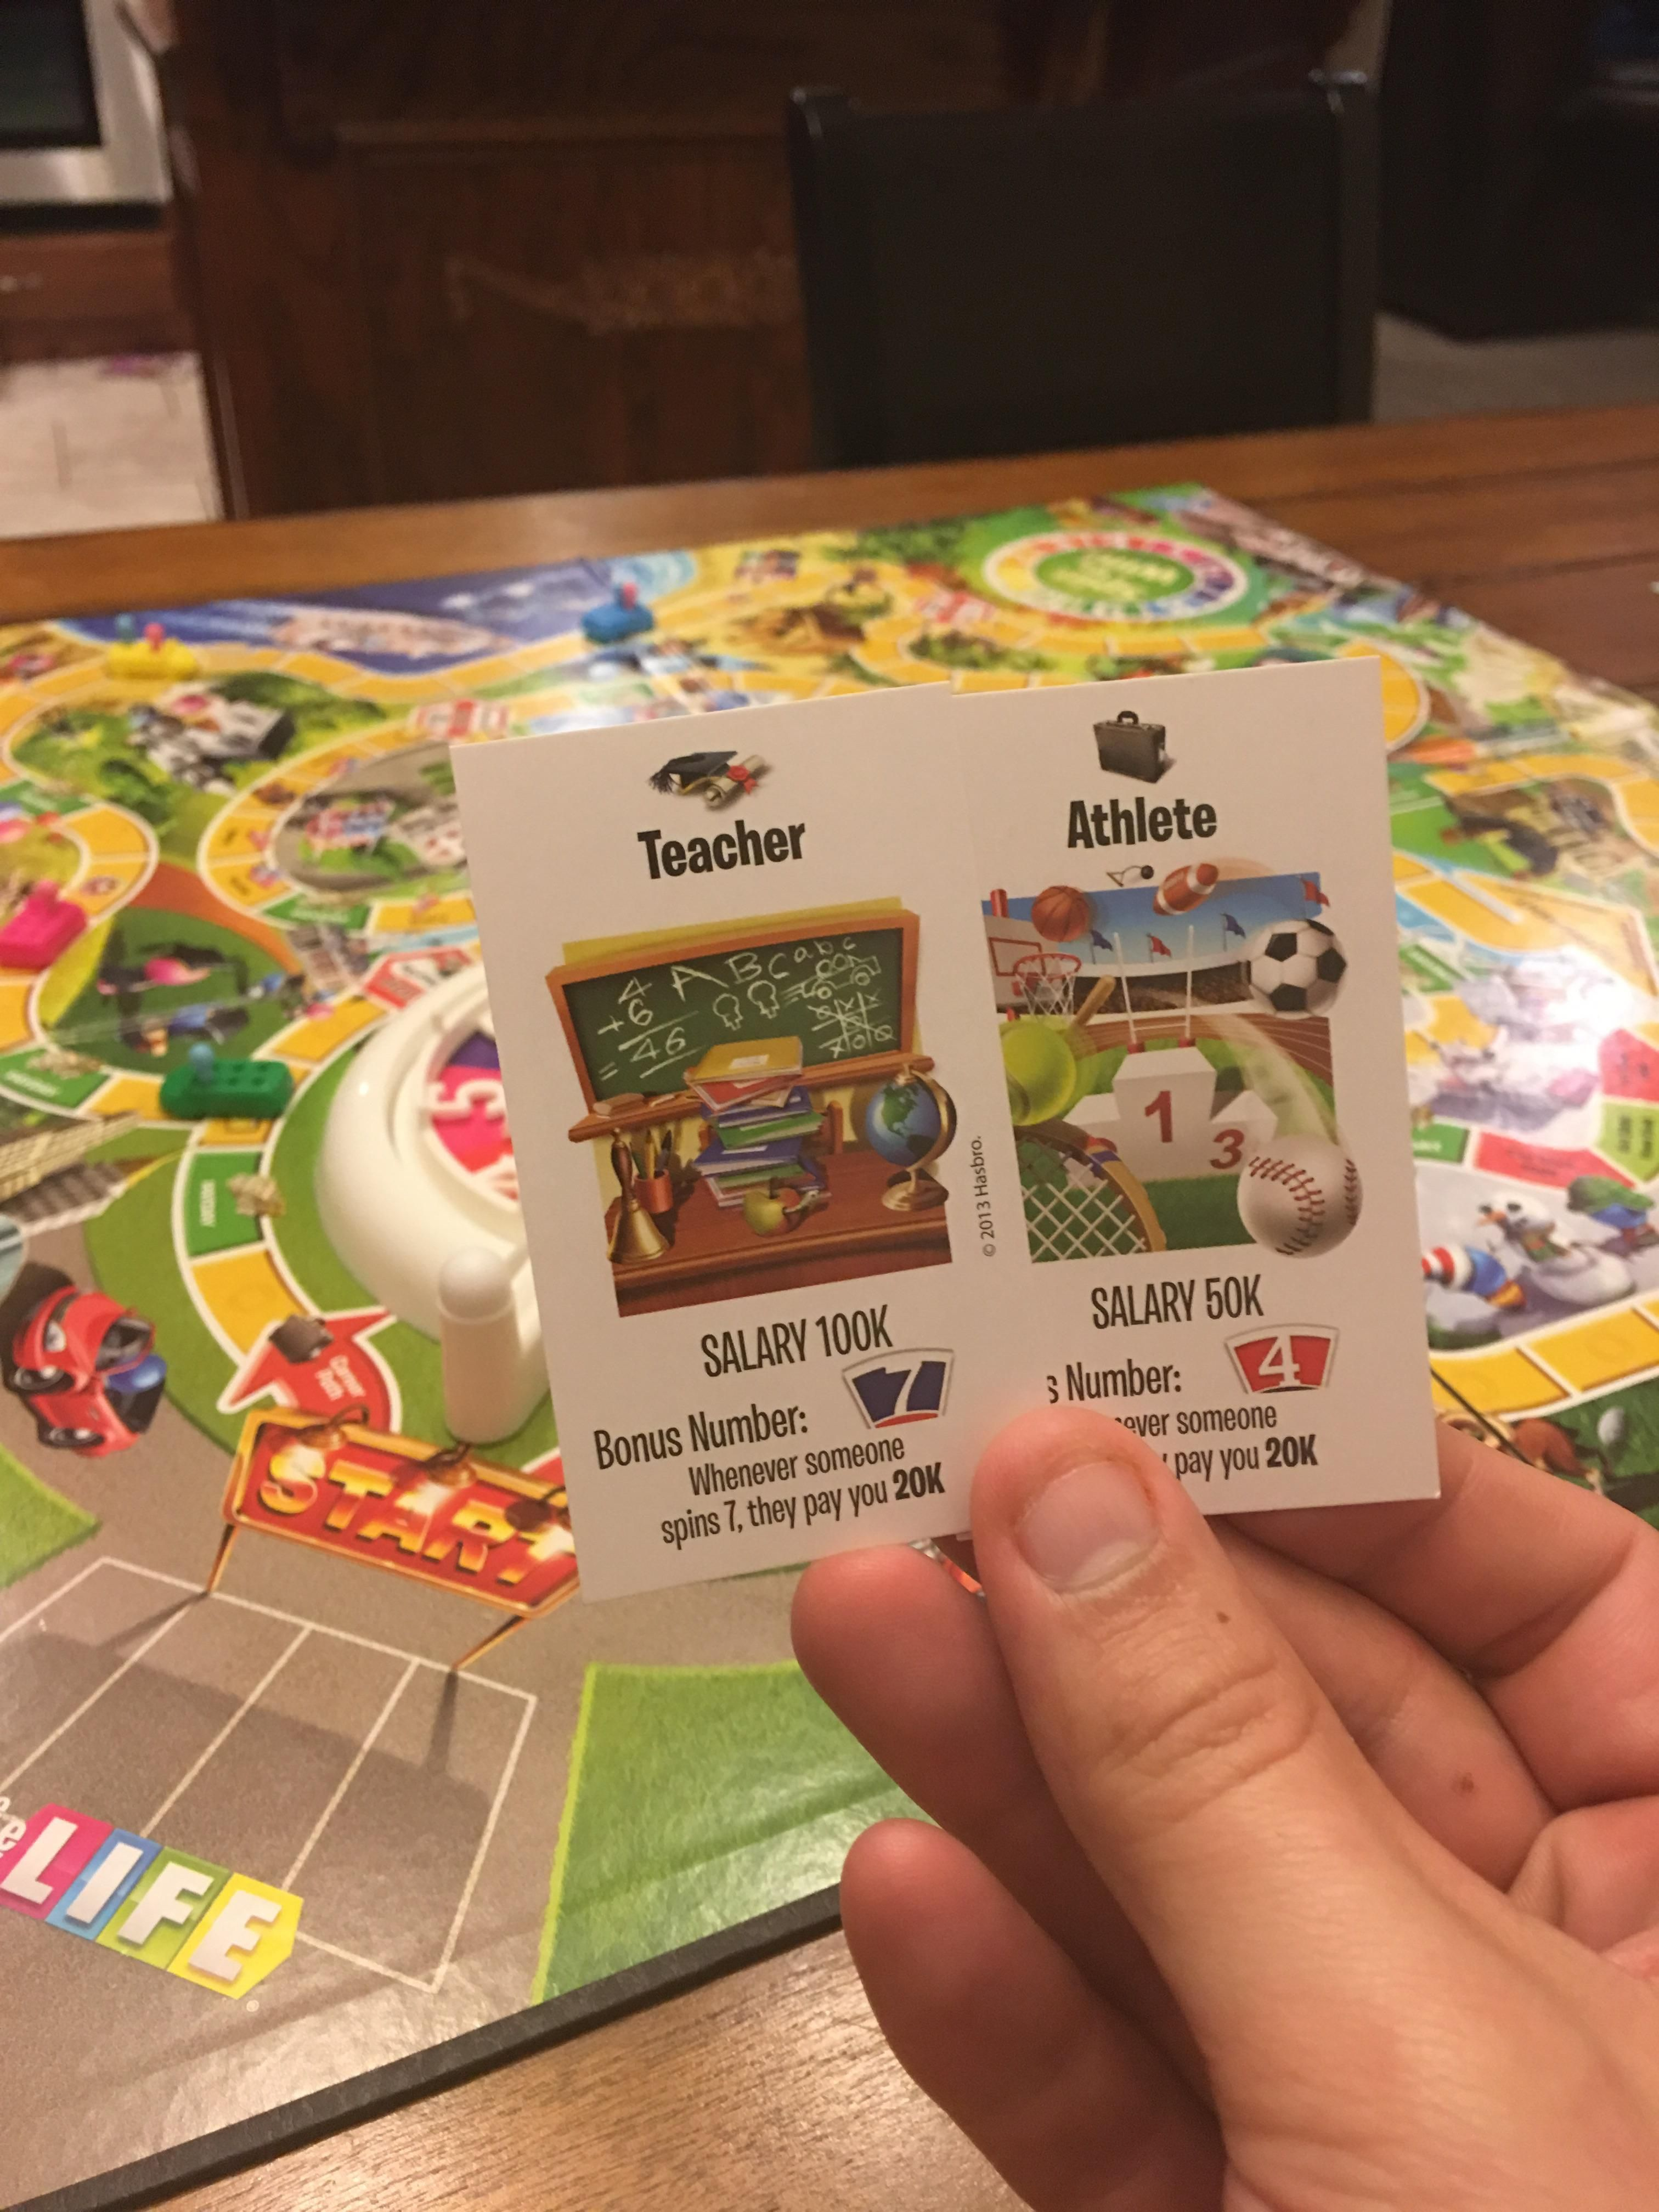 The game of Life has been setting us up for disappointment